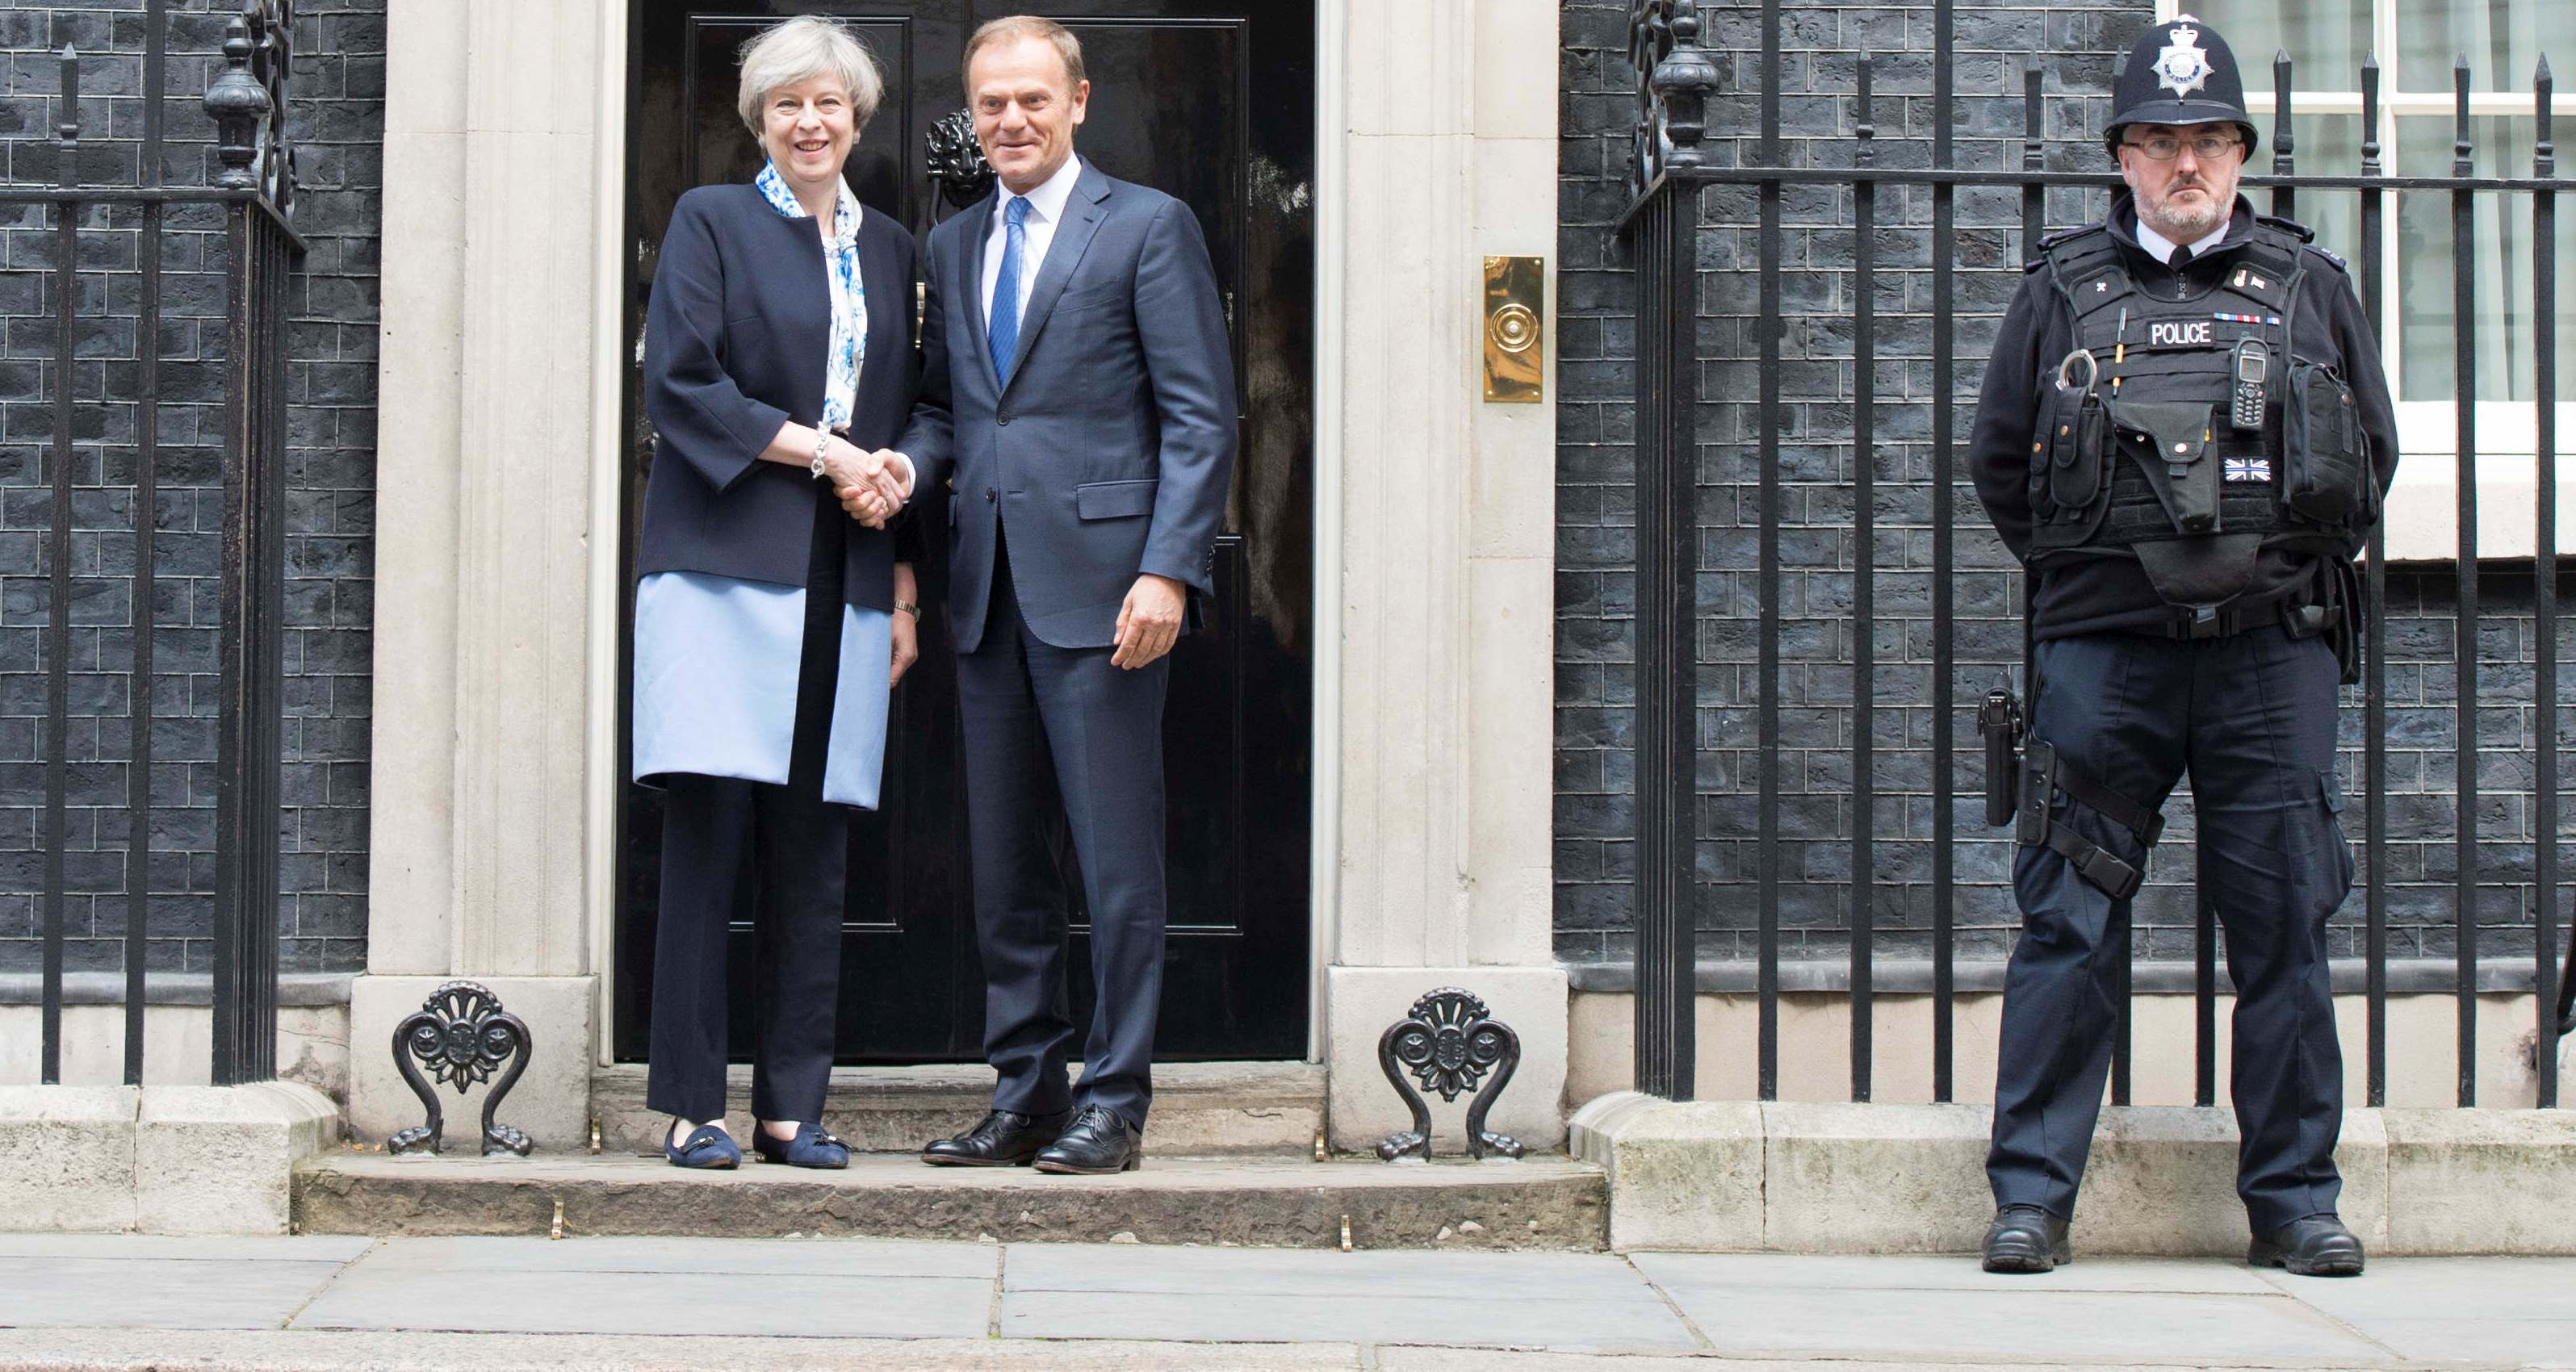 Prime Minister Theresa May with EU President Donald Tusk on 6 April. (Flickr/Number 10)